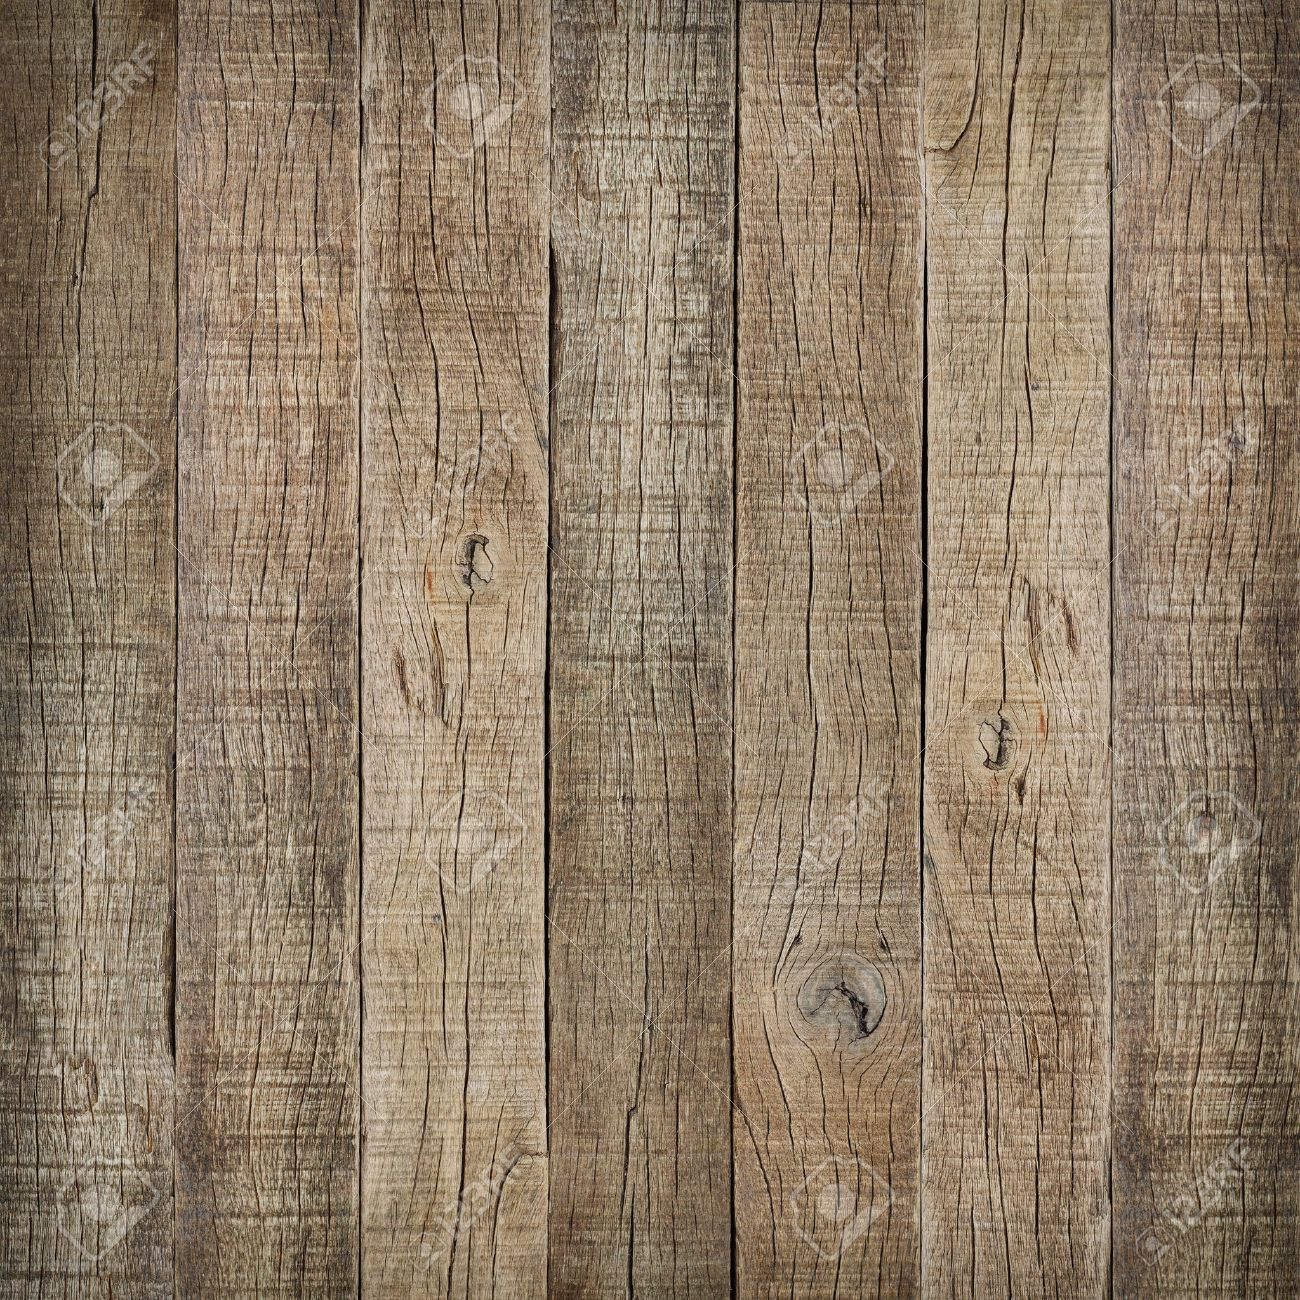 Wood Grain Texture old wood grain texture may use as background stock photo, picture